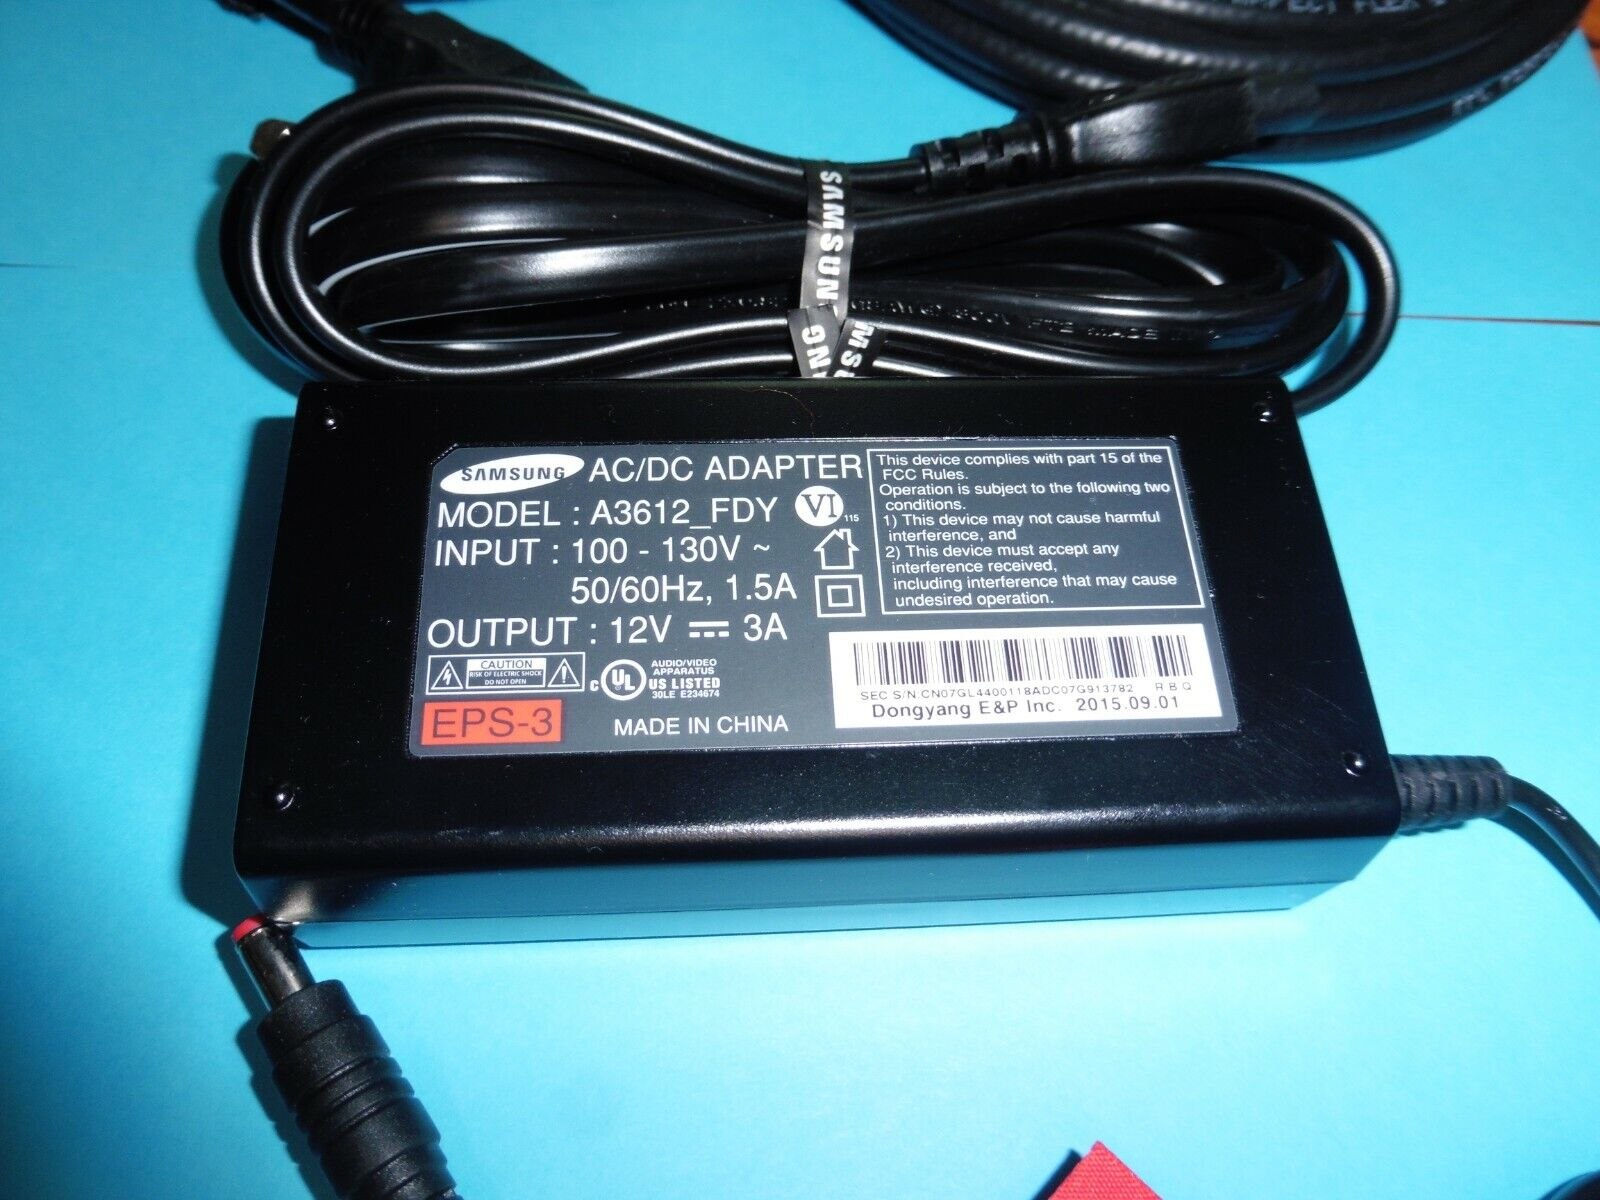 SAMSUNG A3612 FDY 12VDC 3A AC/DC Adapter Power Supply Charger EPS-3 HDMI/COAX - $5.50